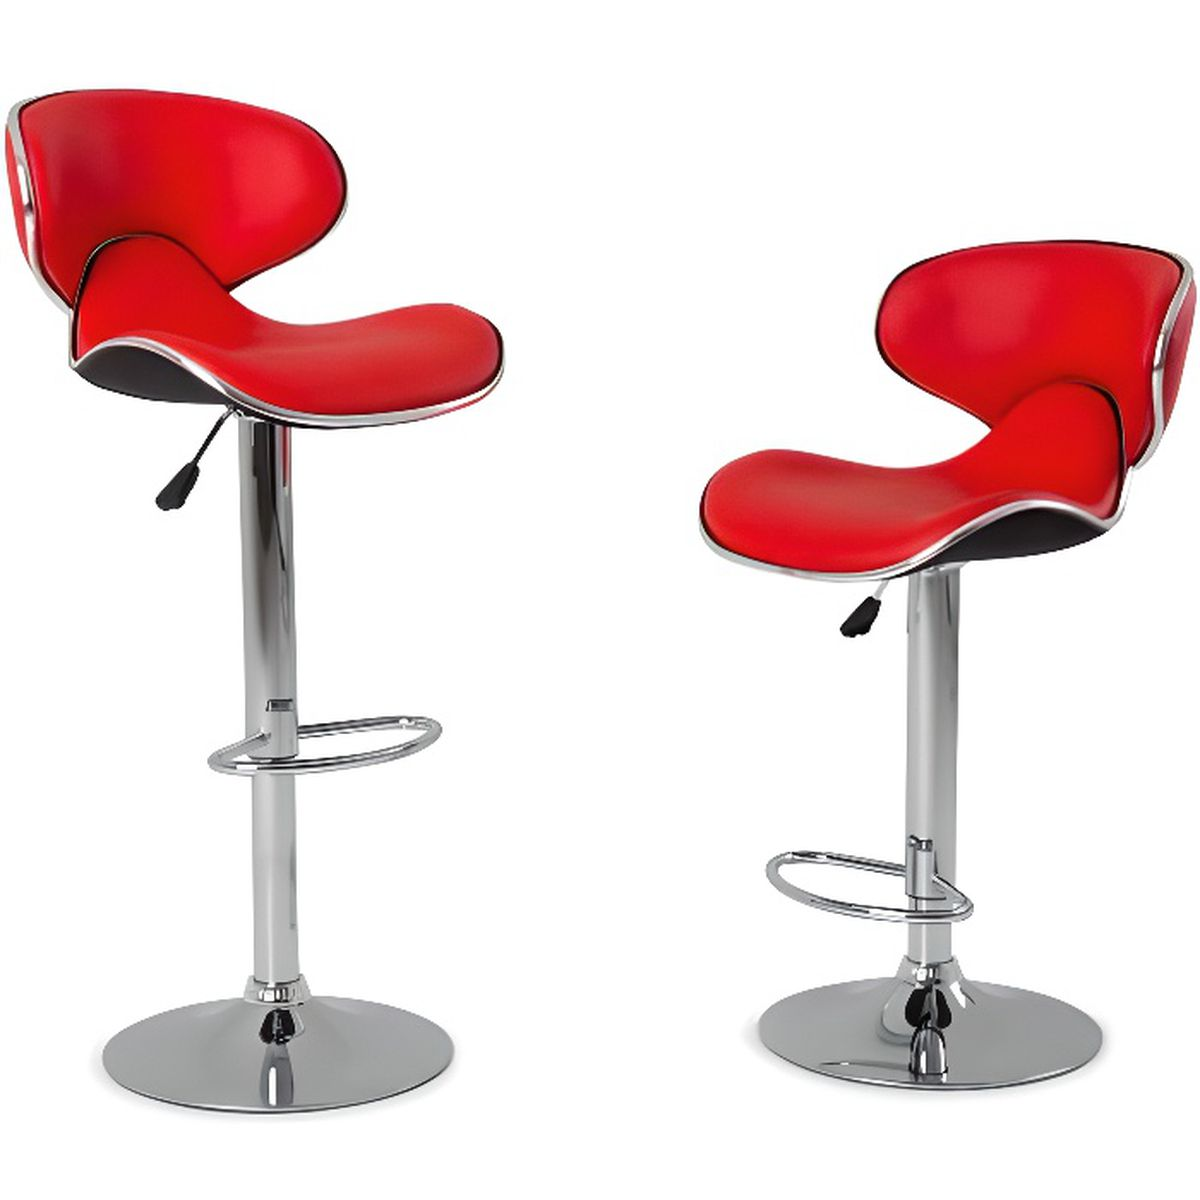 tabouret de bar rouge achat vente pas cher cdiscount. Black Bedroom Furniture Sets. Home Design Ideas